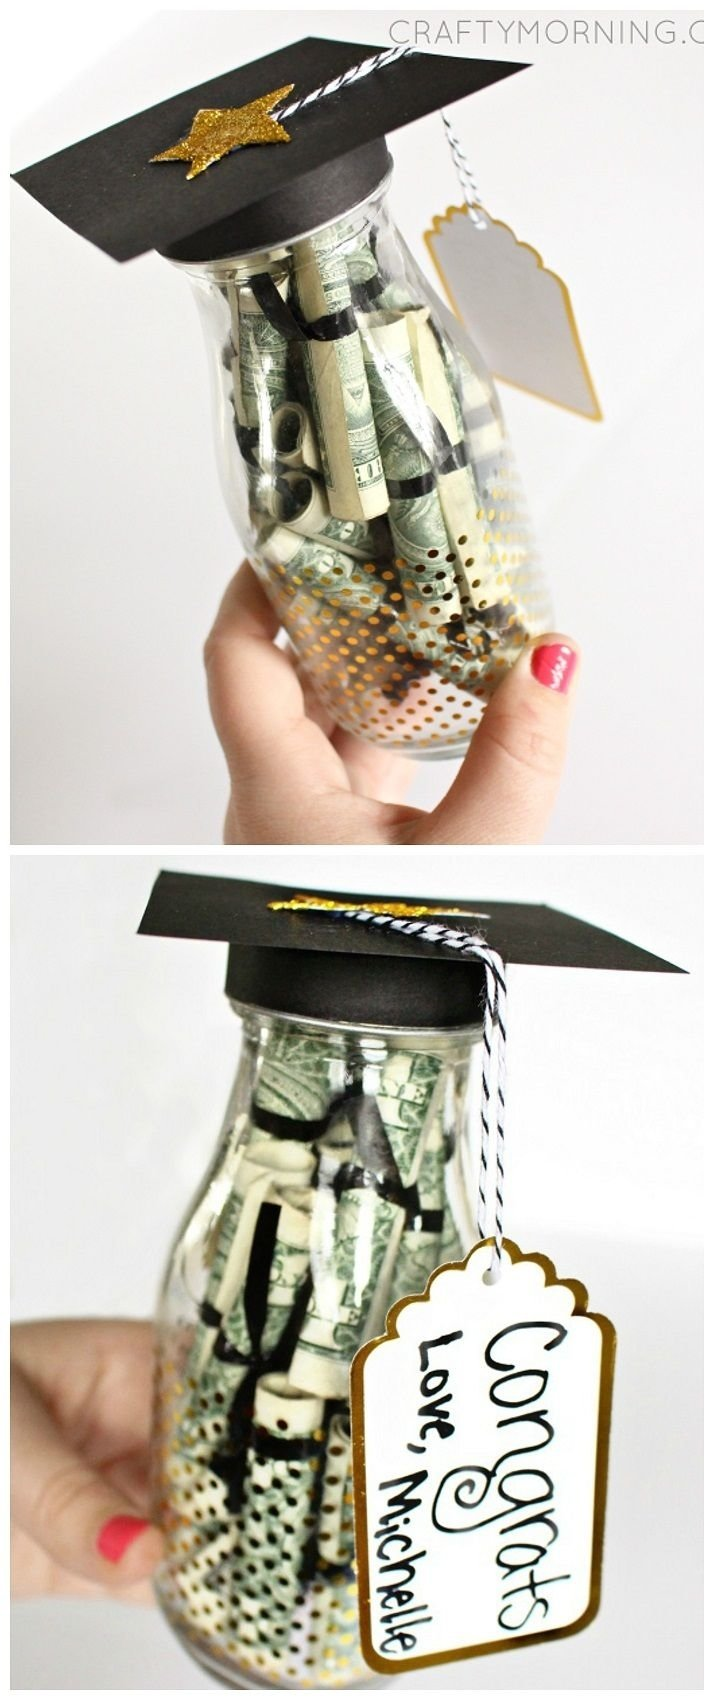 157 best graduation gift ideas images on pinterest | graduation